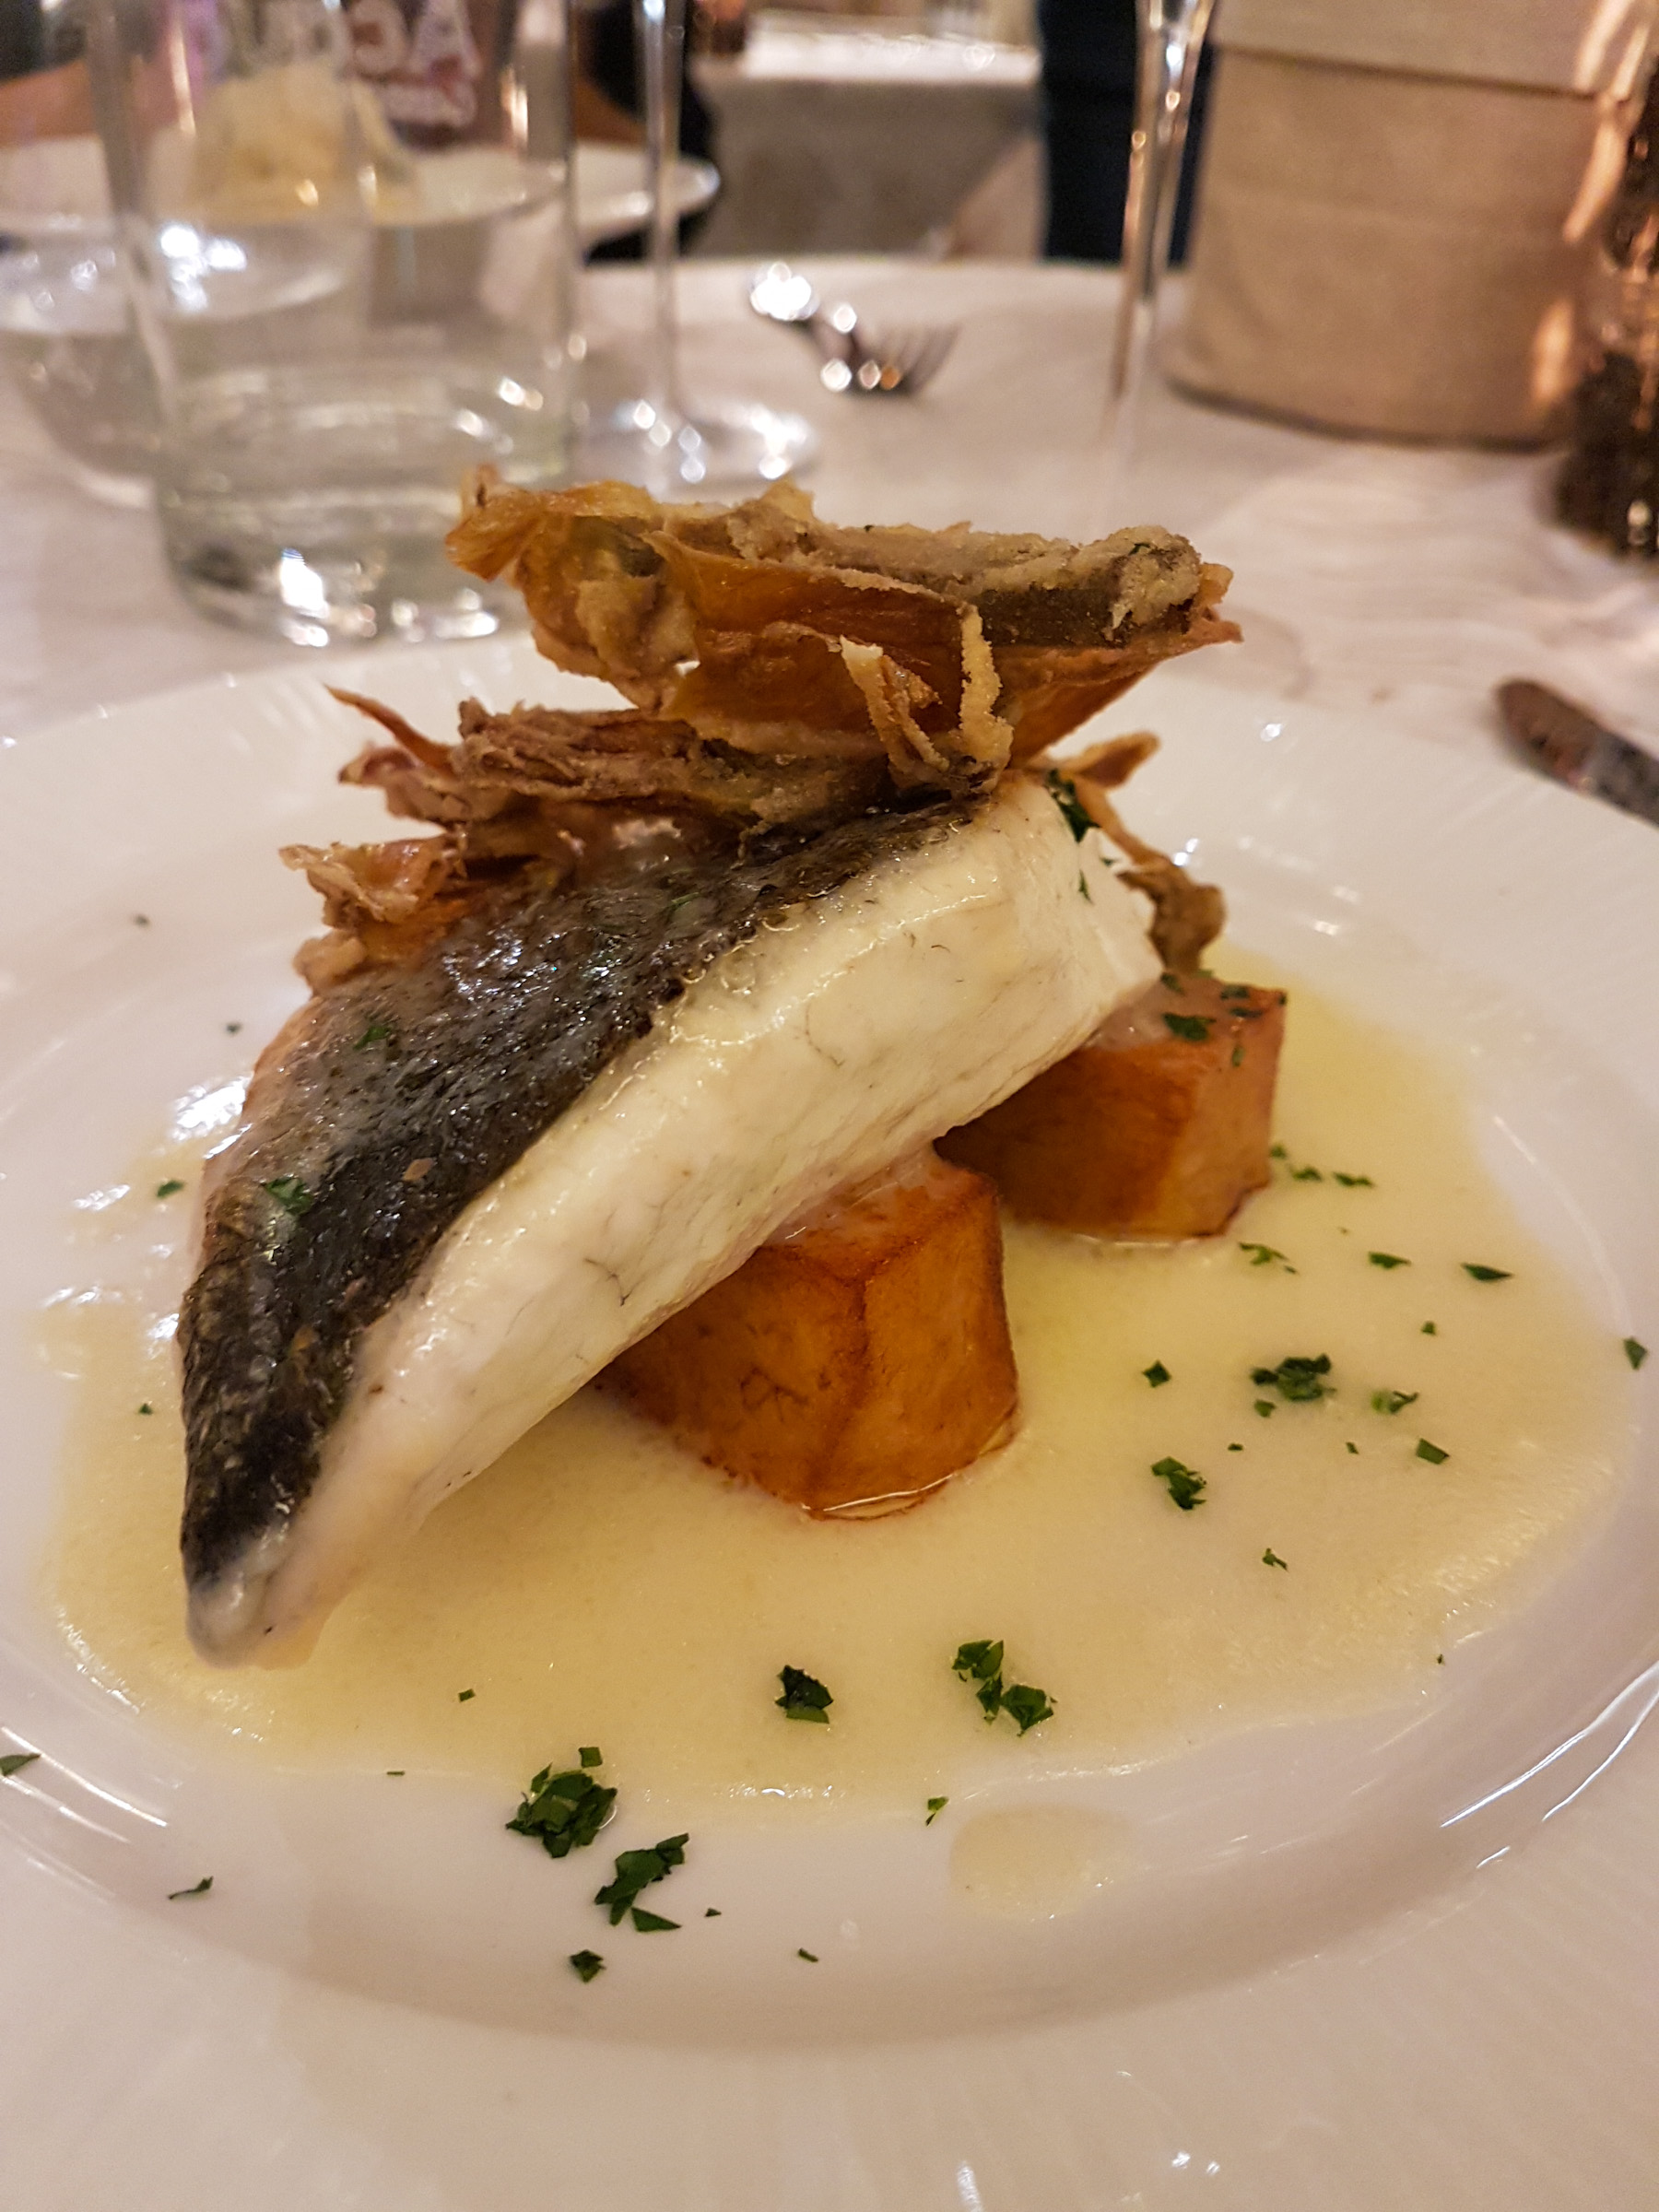 Kabb Bistrot in Piazza Alessandria, in Rome's Porta Pia neighbourhood, offers all day dining from breakfast to dinner, with fresh ingredients and low prices